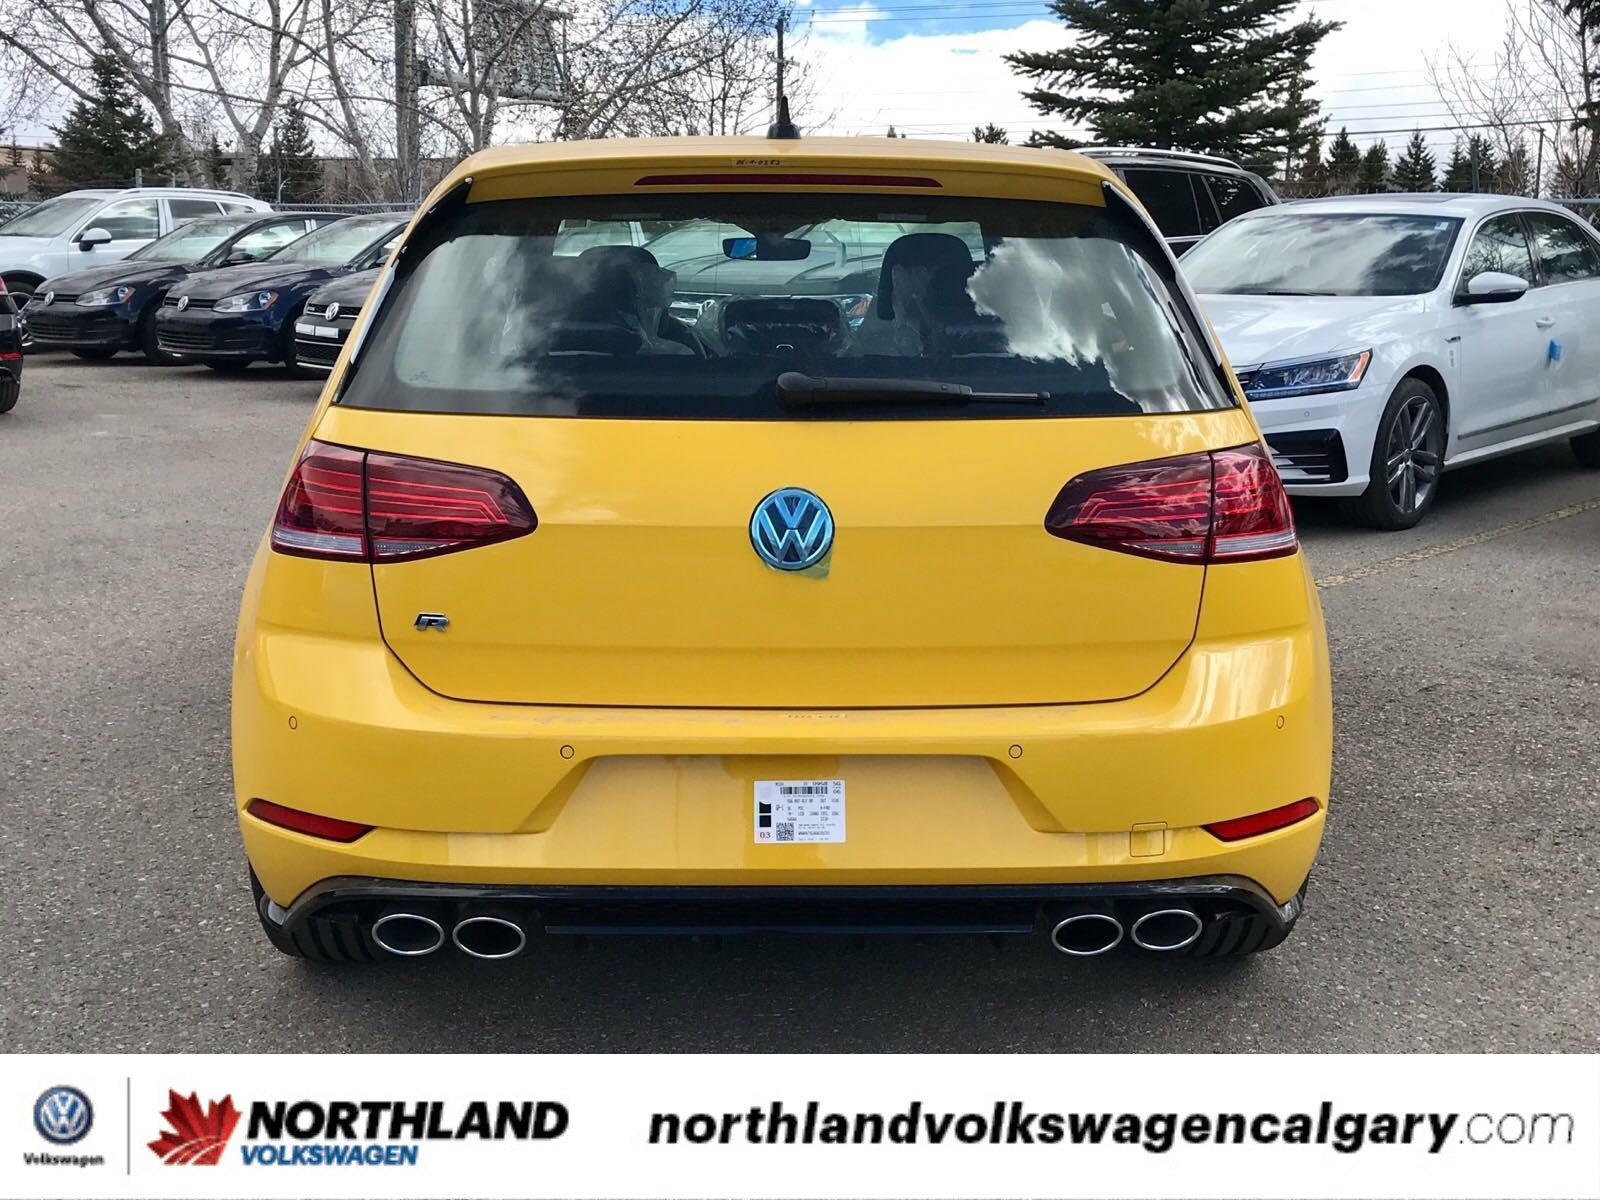 L132, 9150 - GINSTER YELLOW, GINSTERGELB (GOLF R)-5.jpg